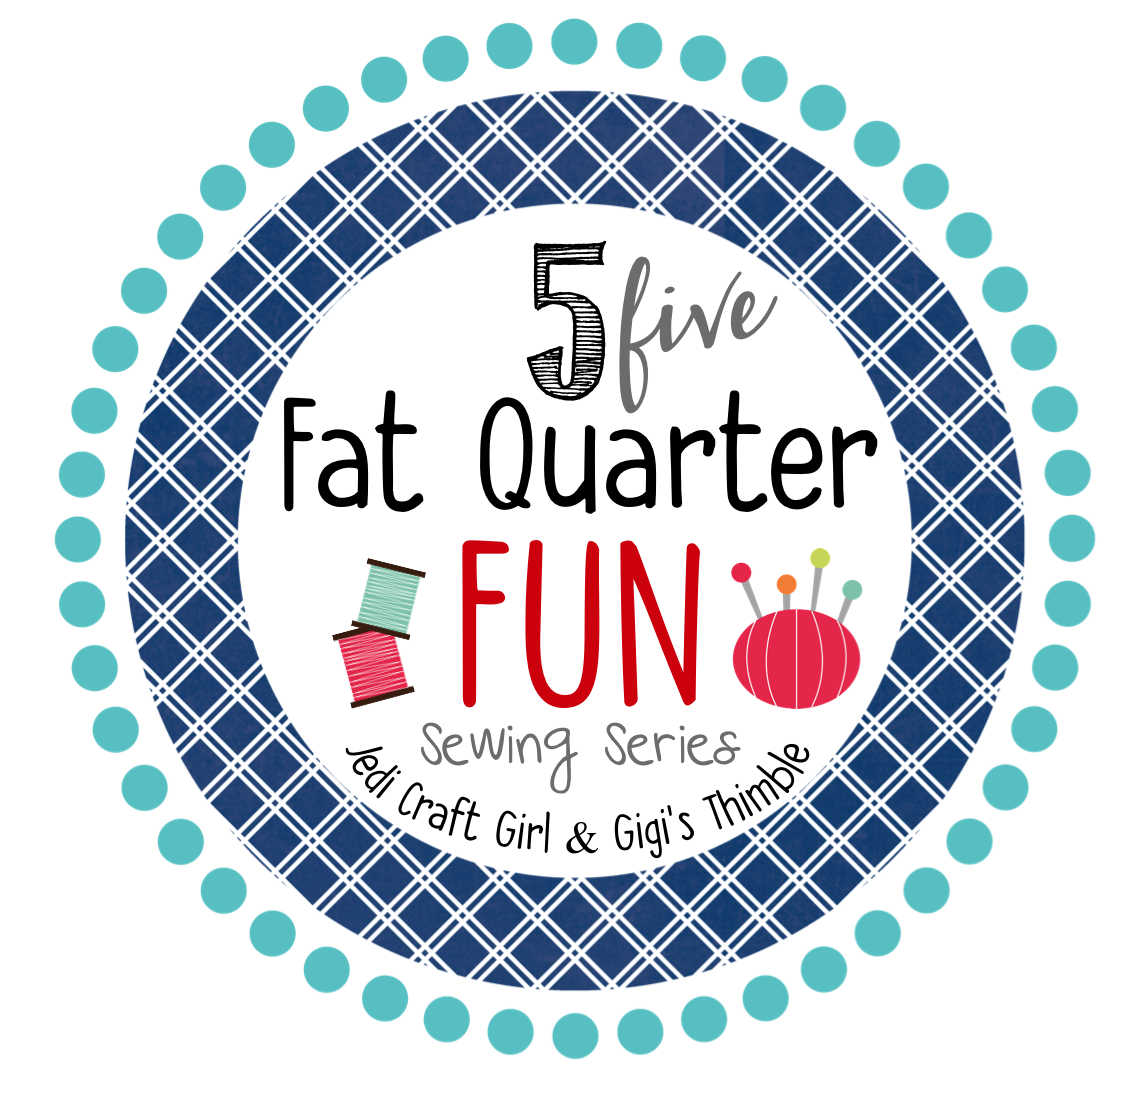 5 fat quarter fun logo